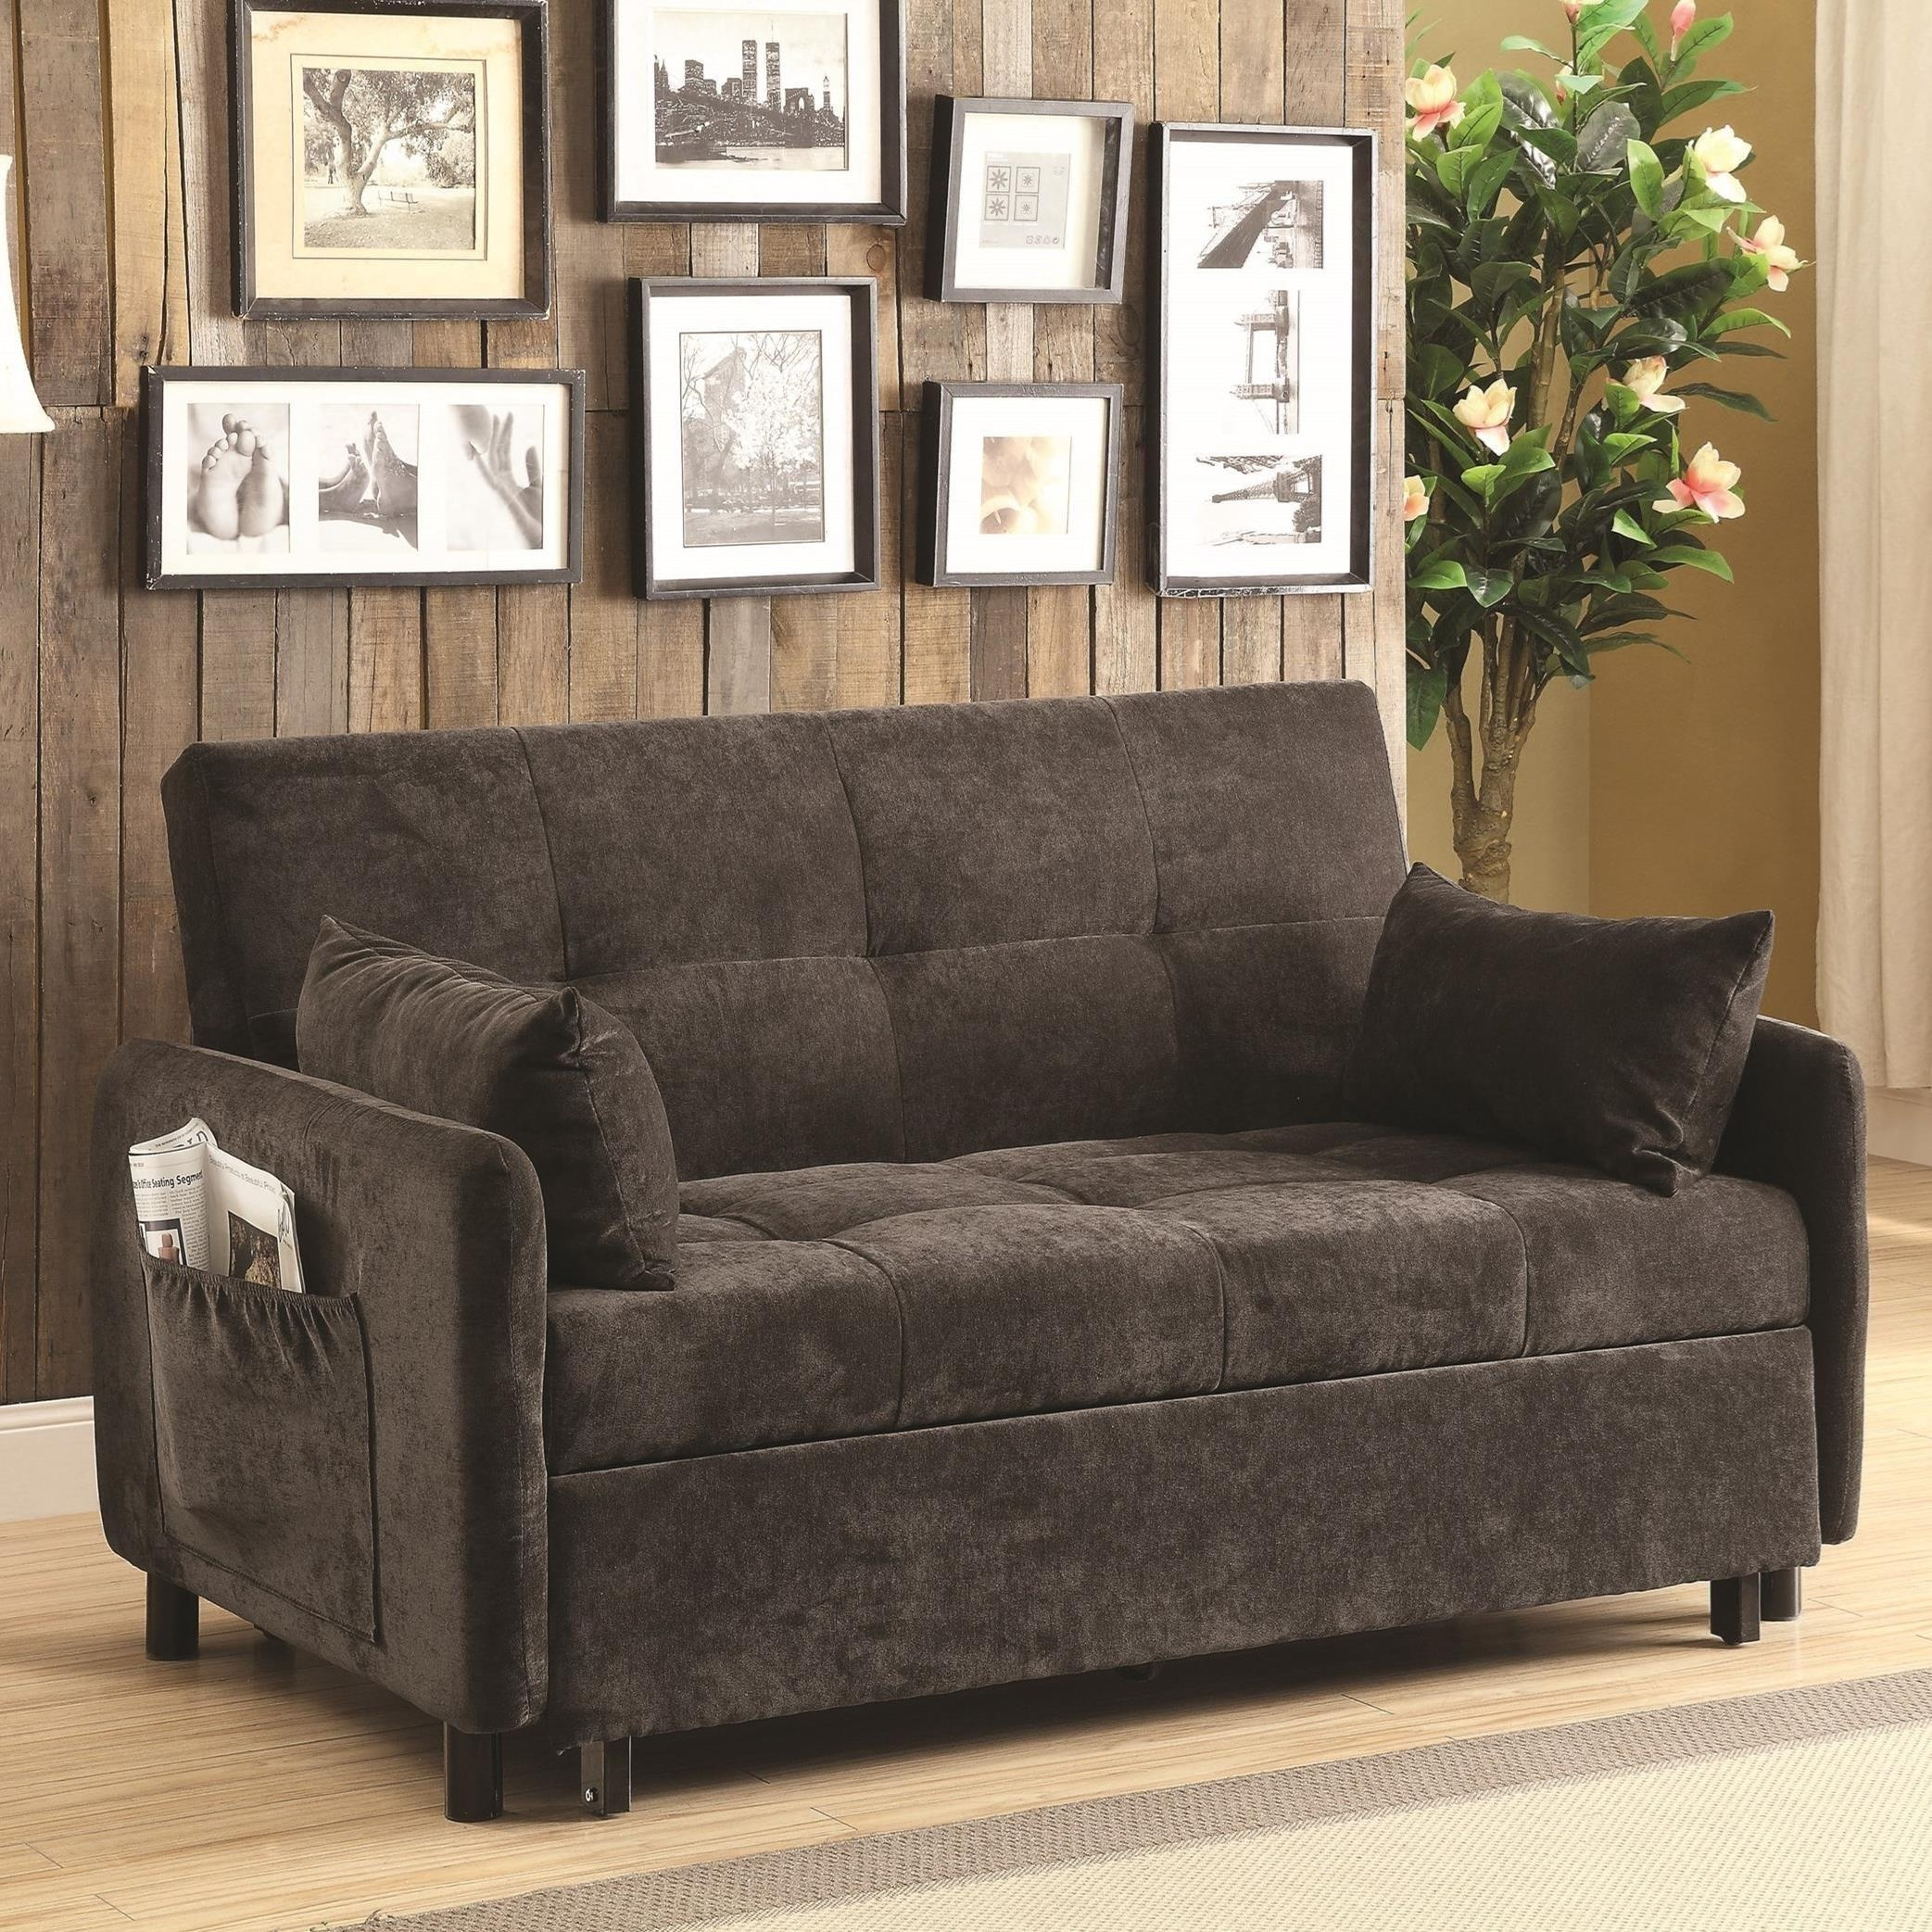 Coaster Futons Dark Brown Sofa Bed – Del Sol Furniture – Futons Regarding Coaster Futon Sofa Beds (View 6 of 20)